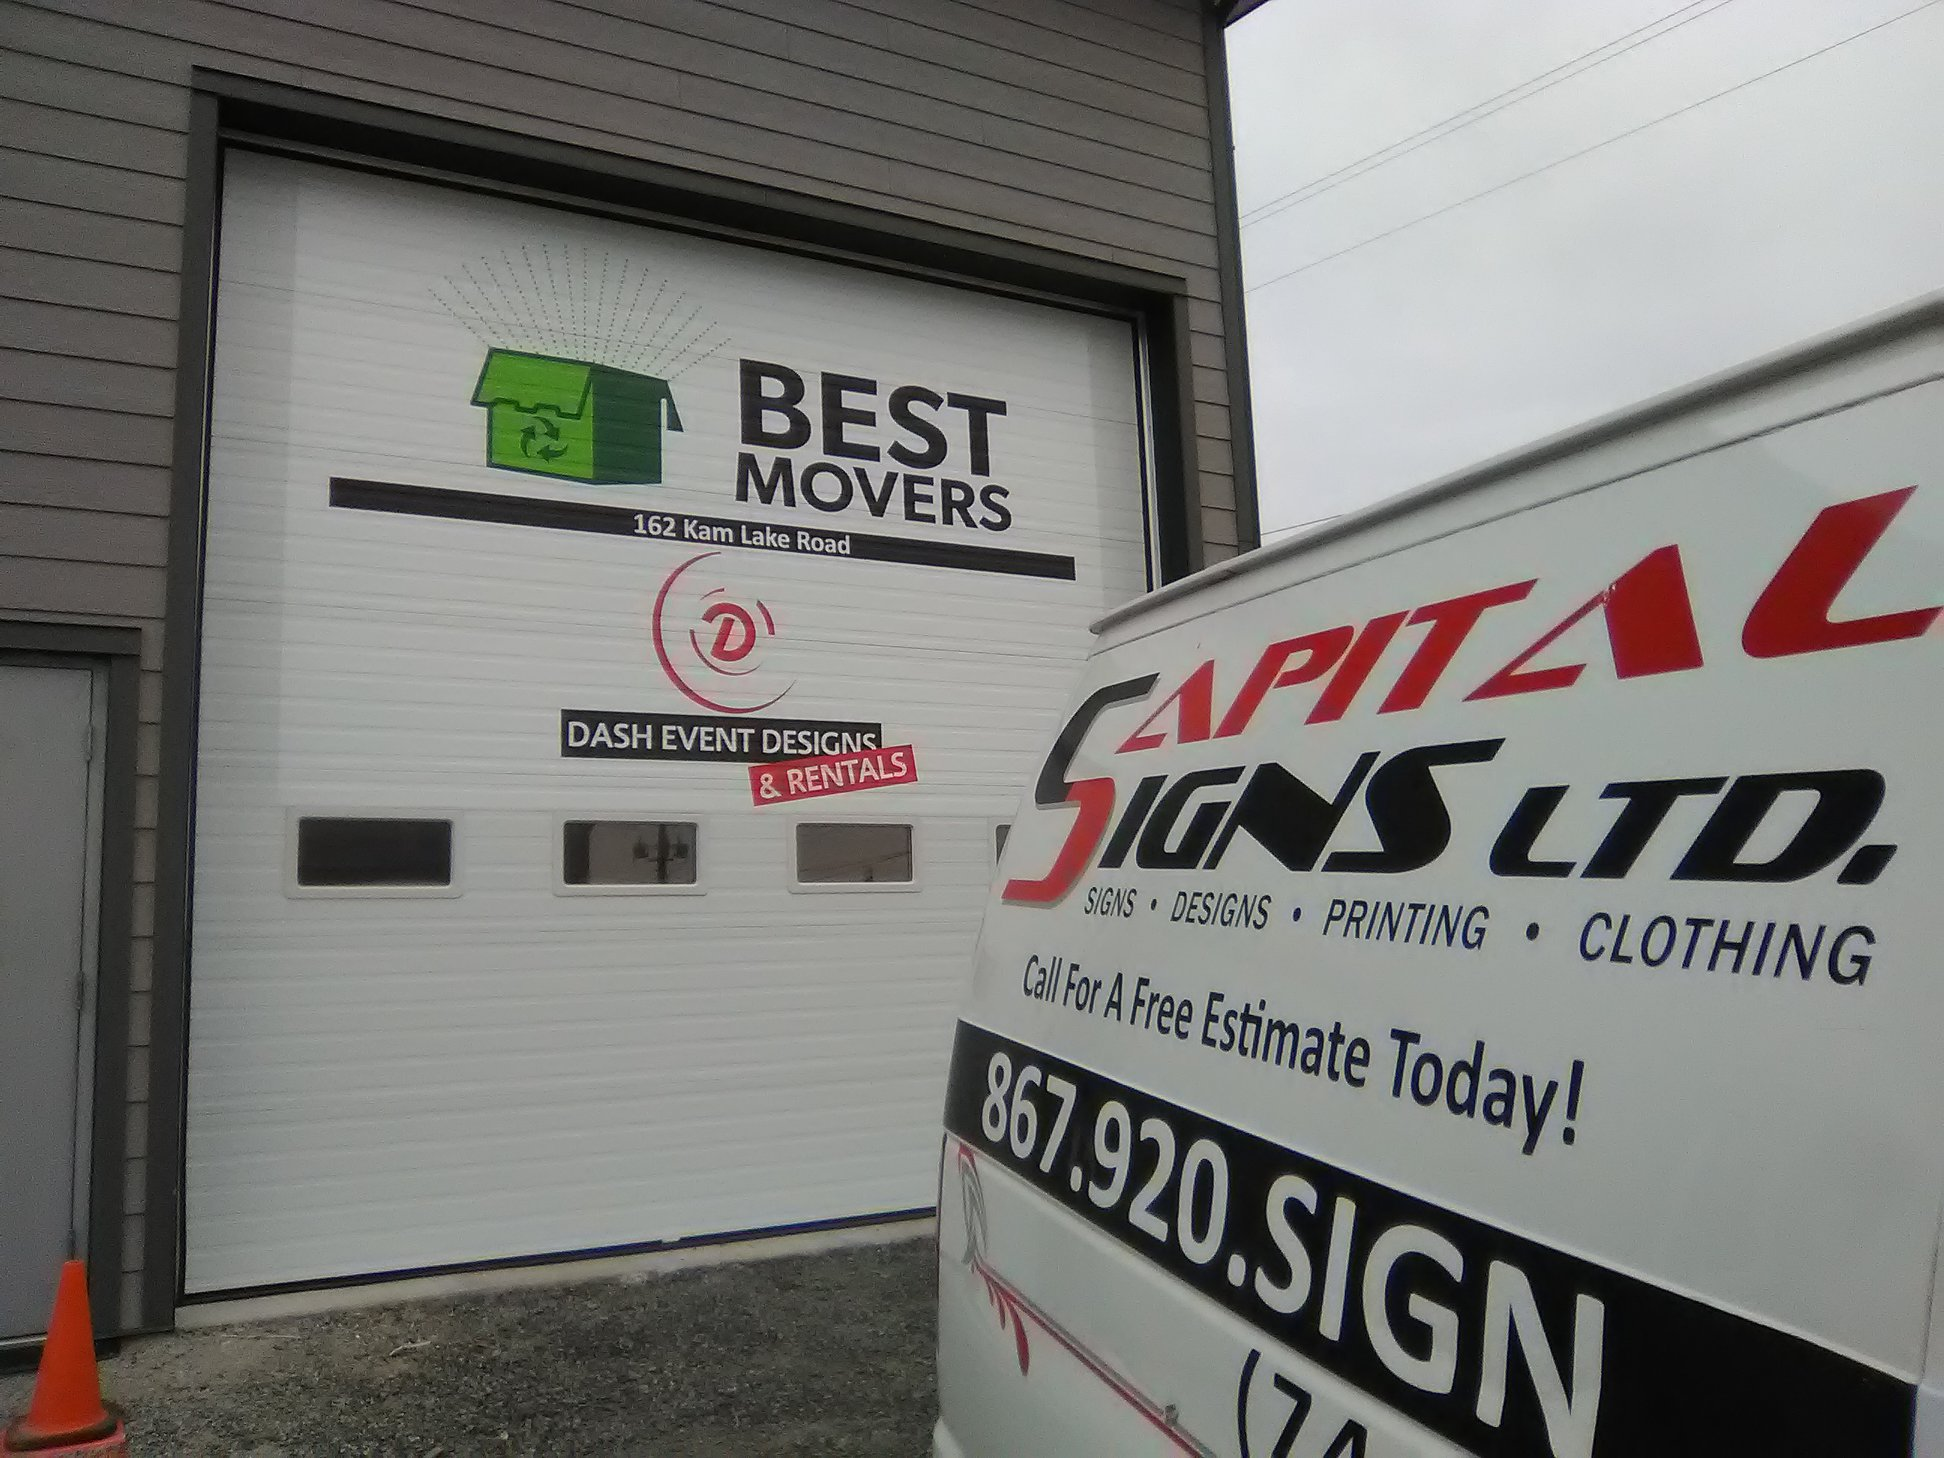 Dash Rentals & Best Movers Building Signage